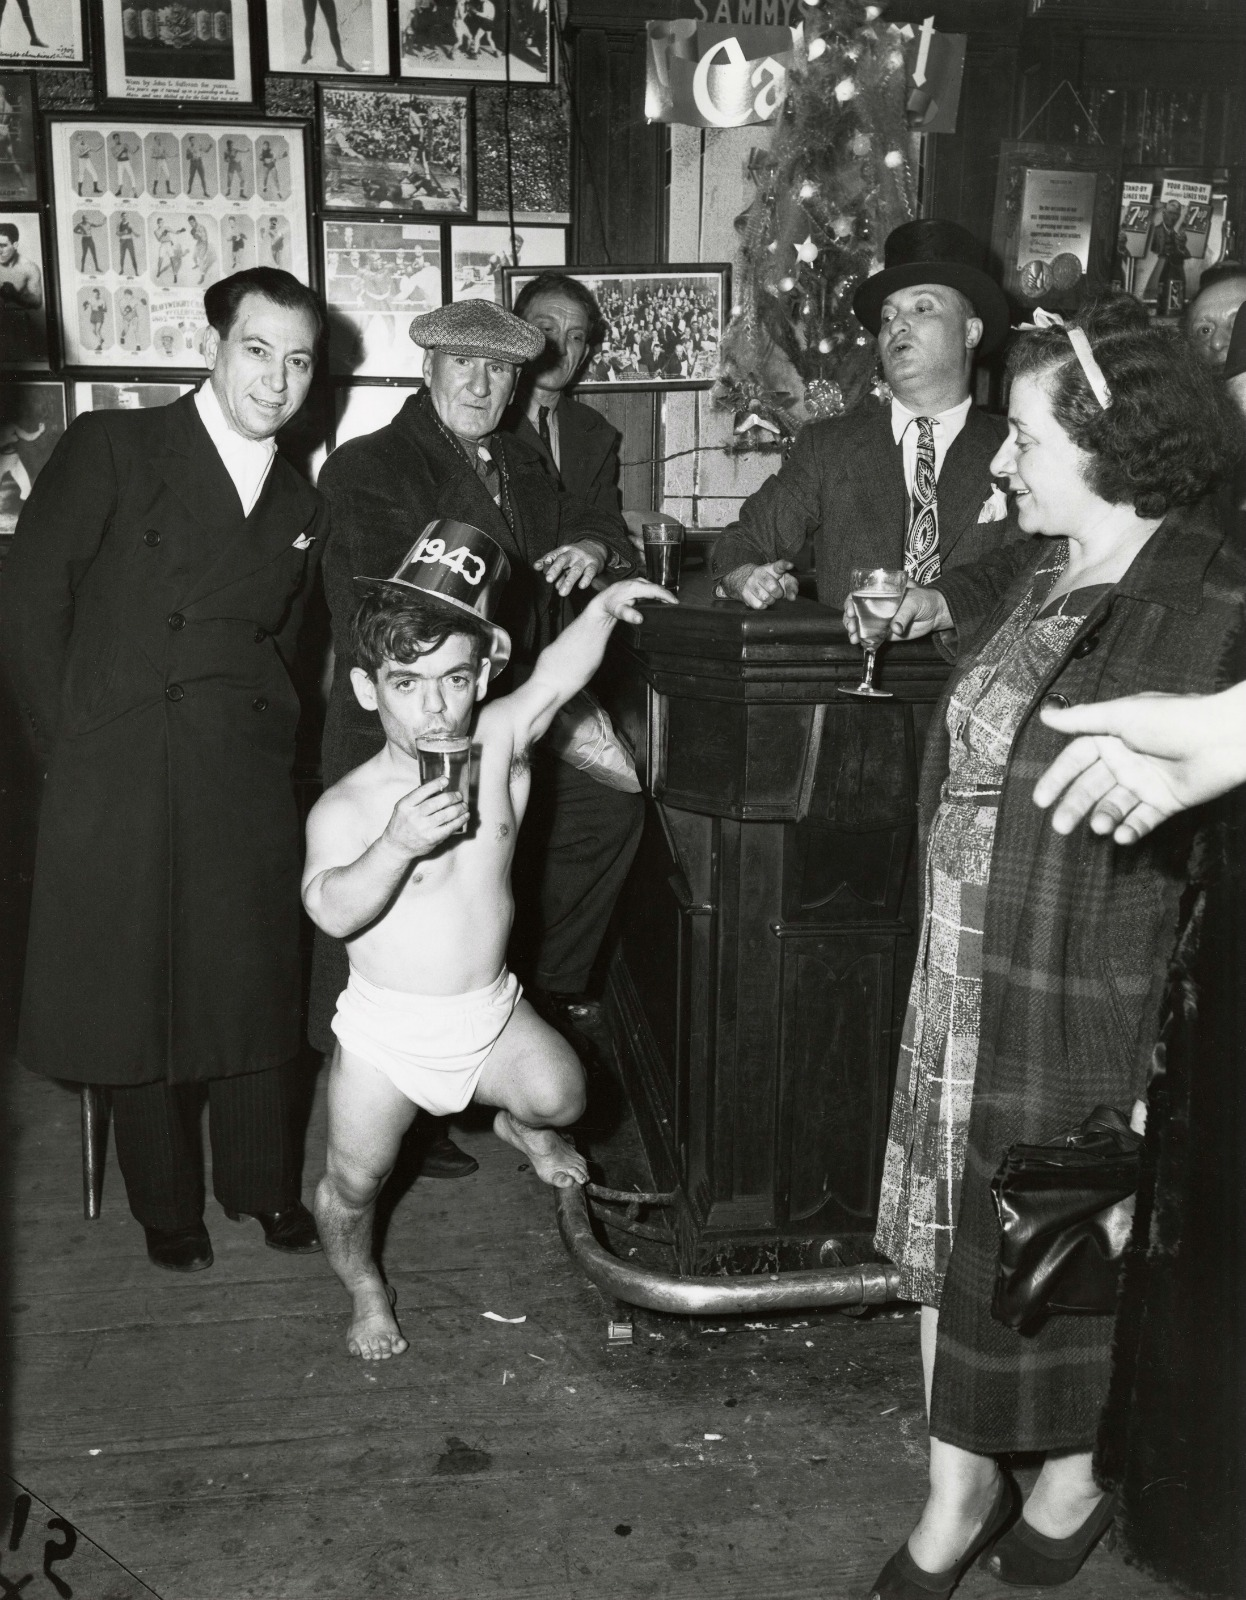 Shorty, the Bowery Cherub, New Year's Eve at Sammy's Bar, New York, 1943, © Weegee / ICP